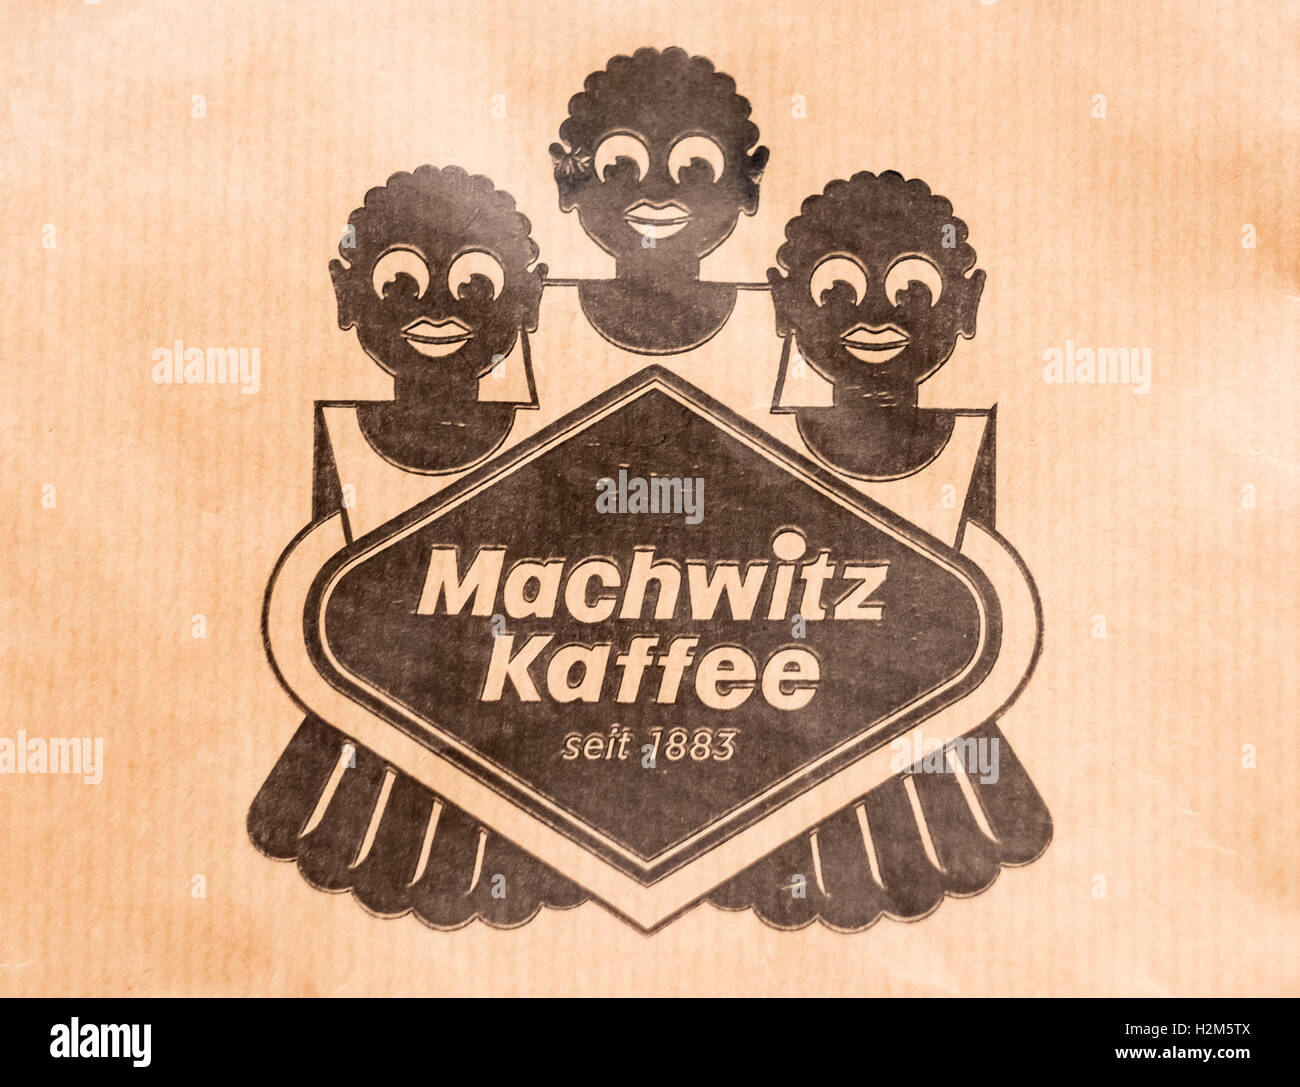 The logo \'Machwitz Kaffee\' is printed onto a bag as part of the ...